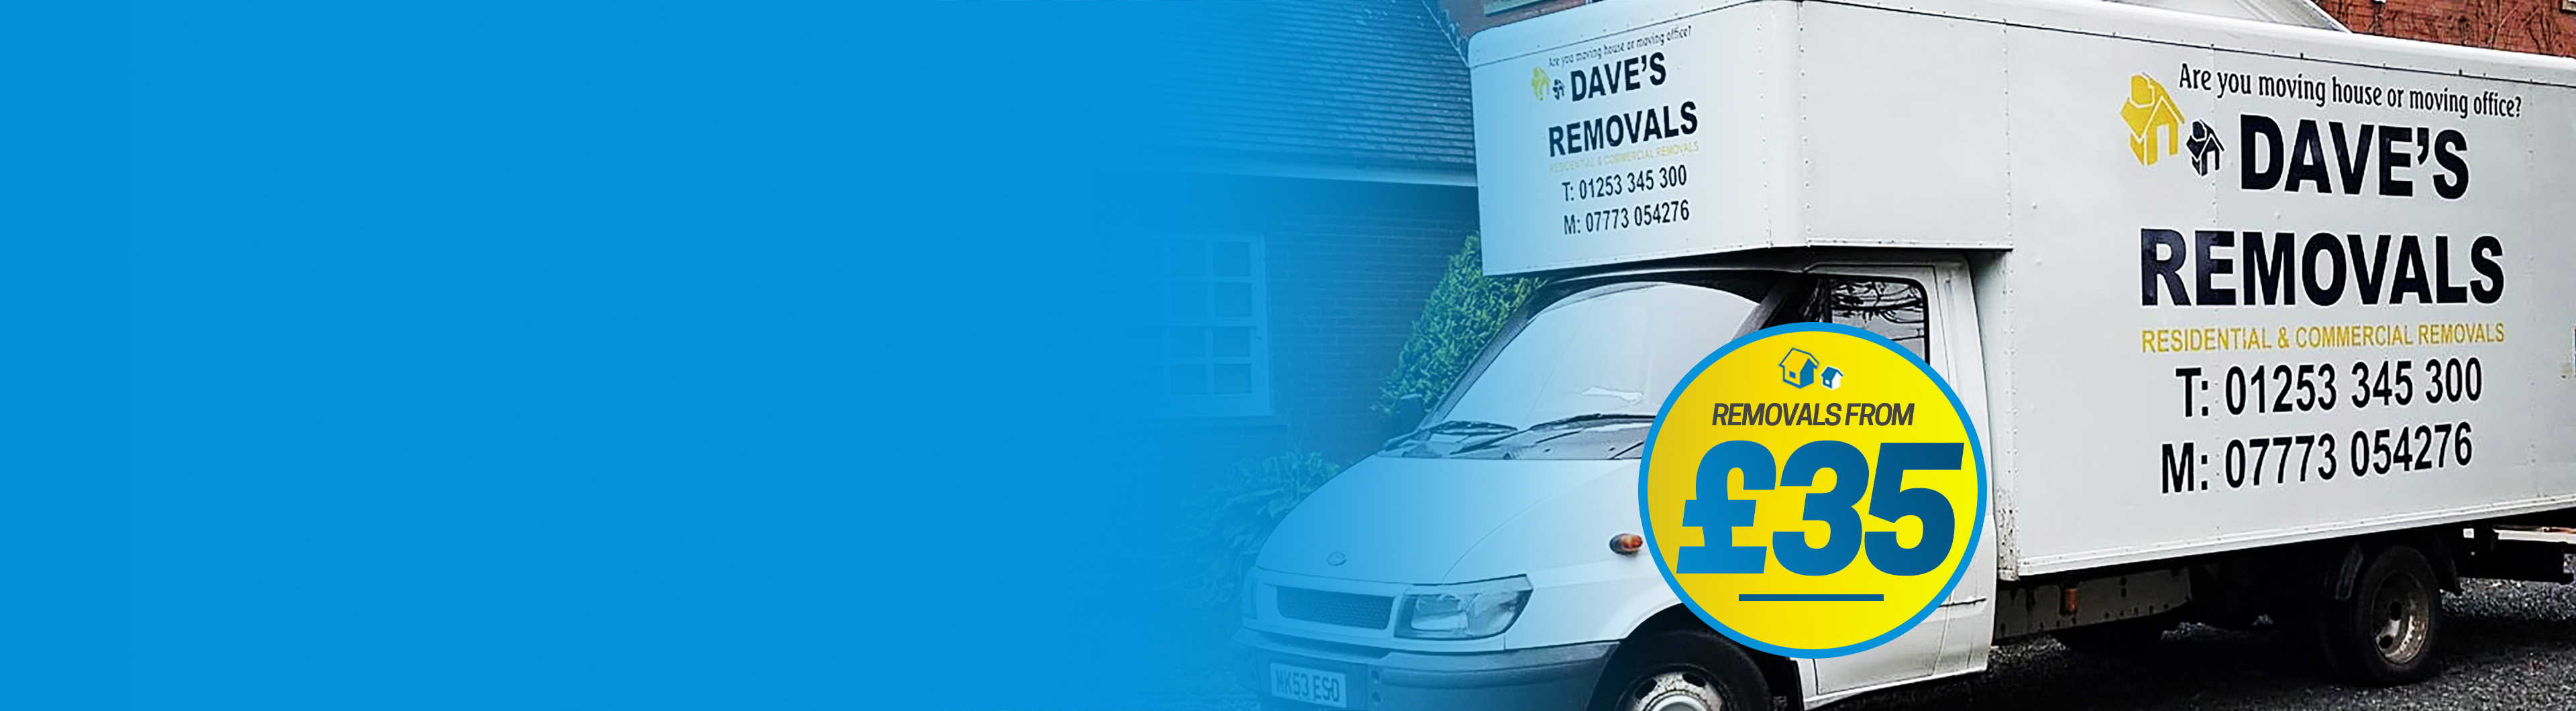 home removals blackpool